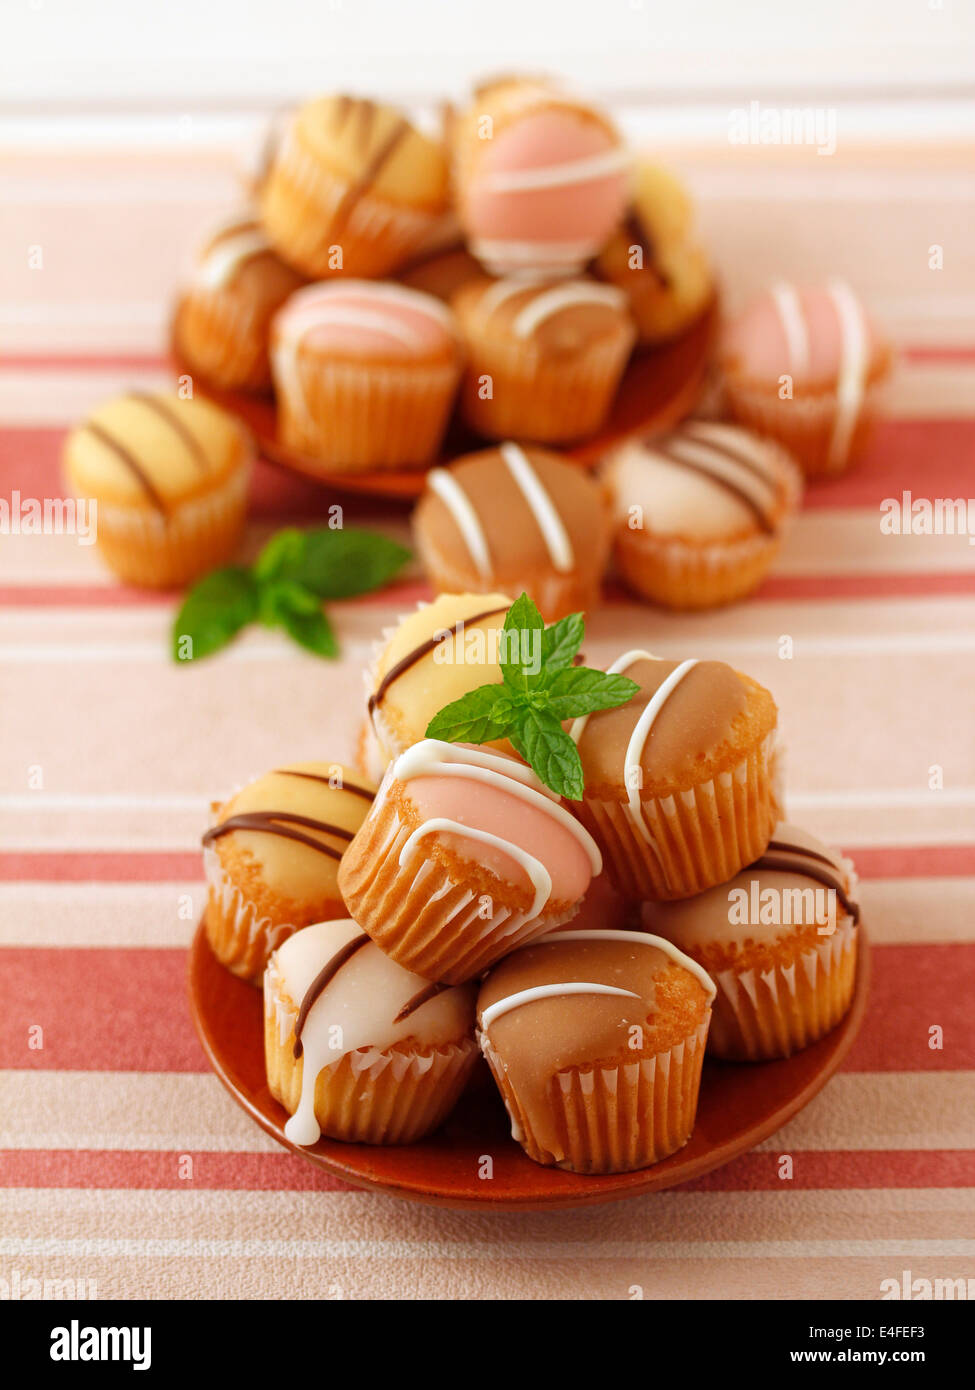 Flavoured minicupcakes. Recipe available. - Stock Image